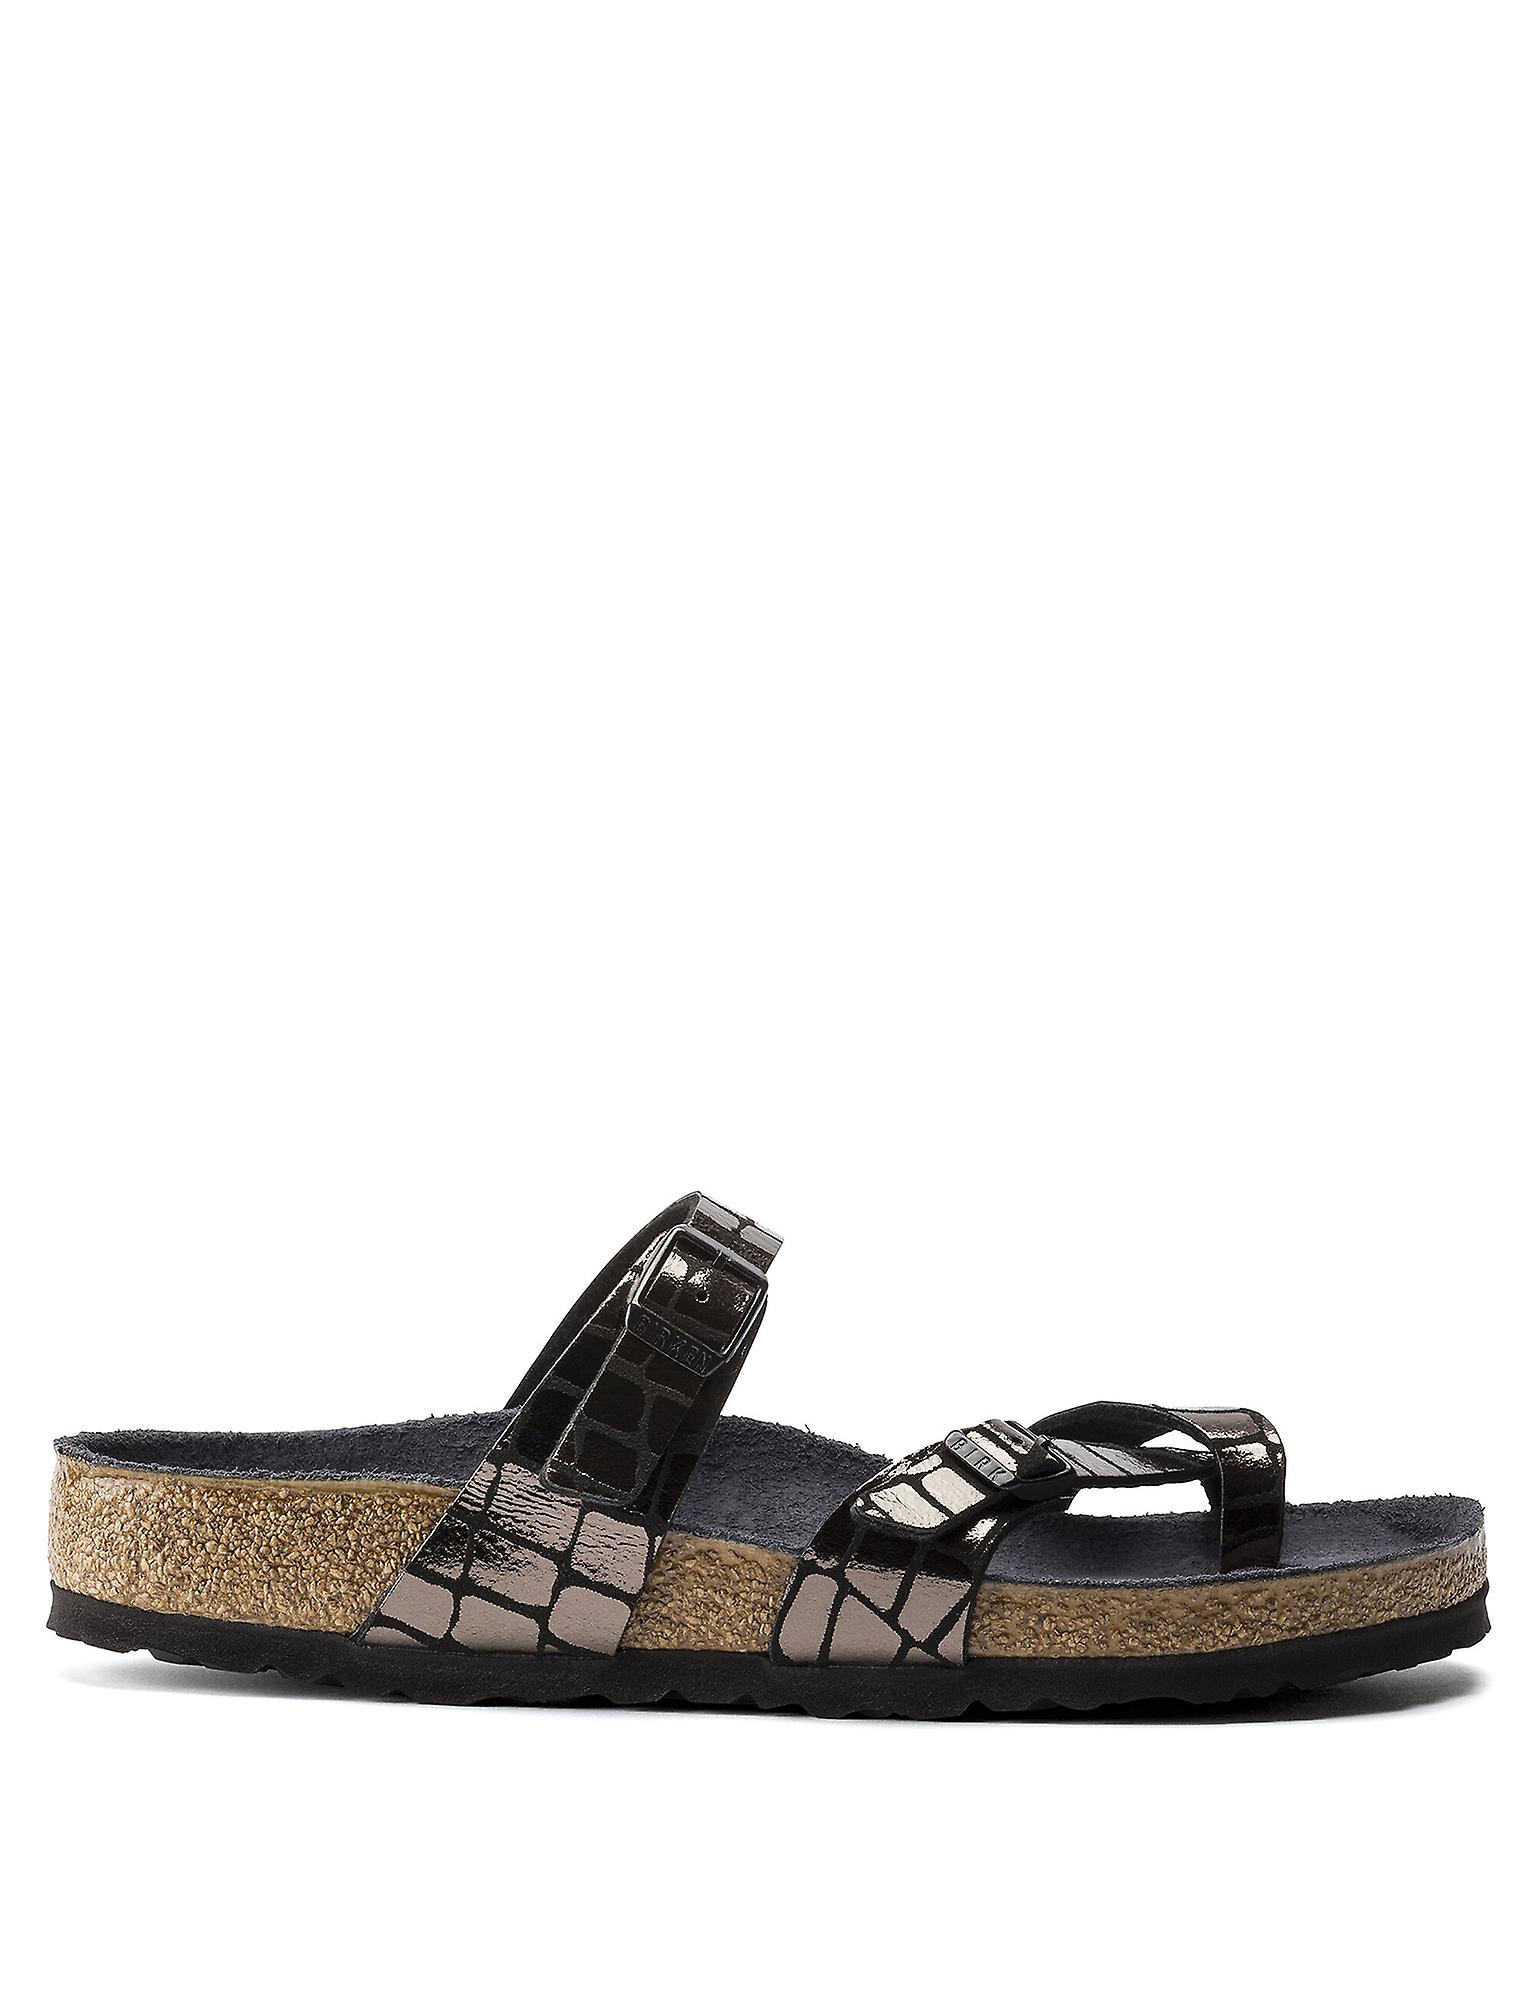 Birkenstock Women's Classic Mayari Seasonal Sandals 2X1Vy